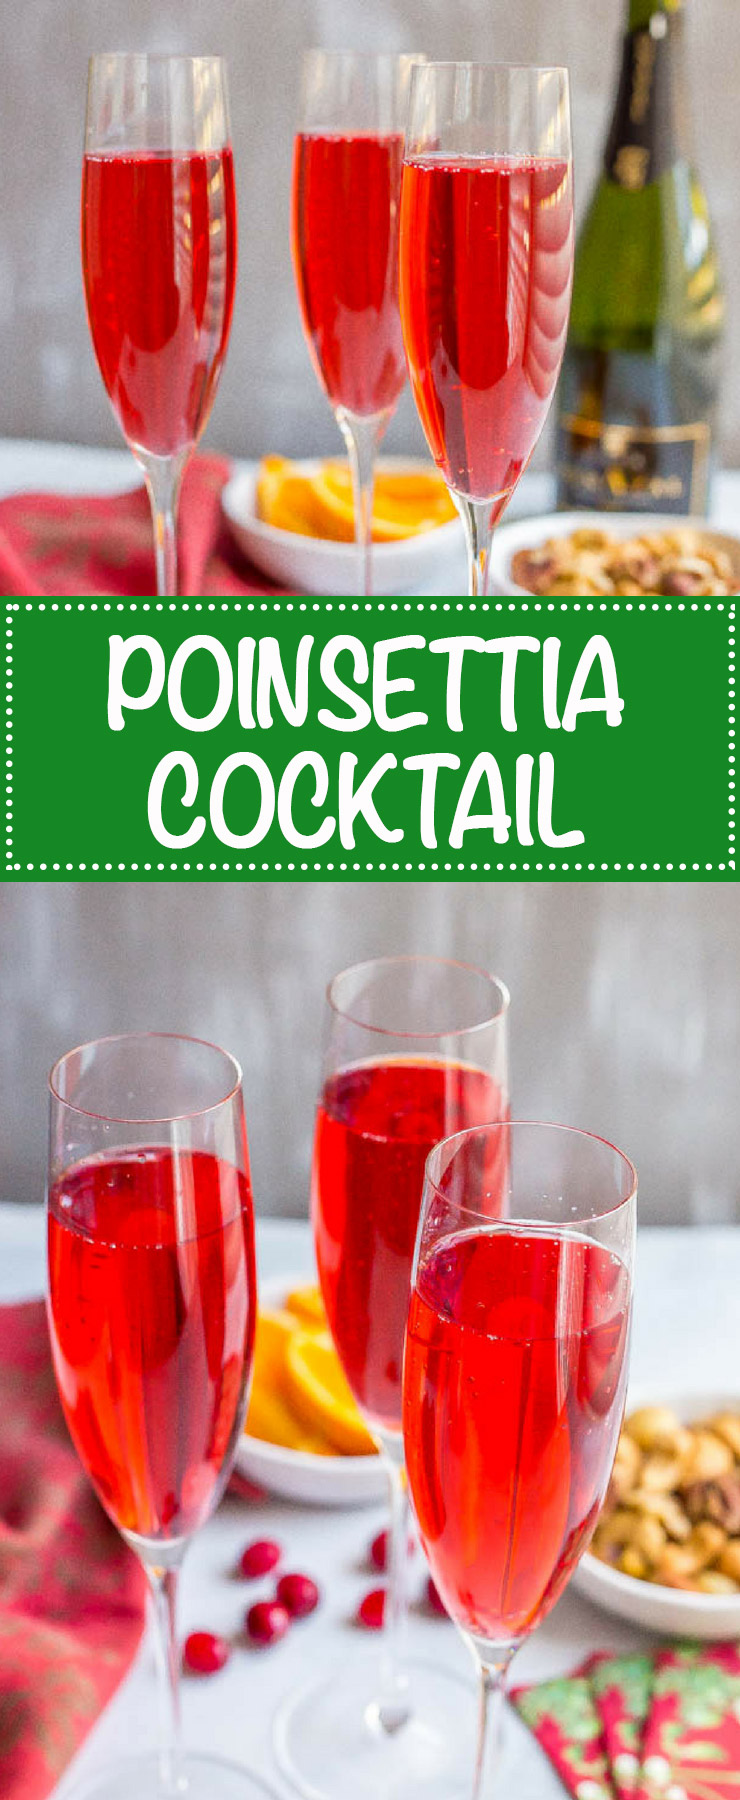 Poinsettia cocktail is an easy but pretty cranberry mimosa that's fun and festive for the holidays! #champagne #cranberryjuice #mimosa #cocktail #holidays